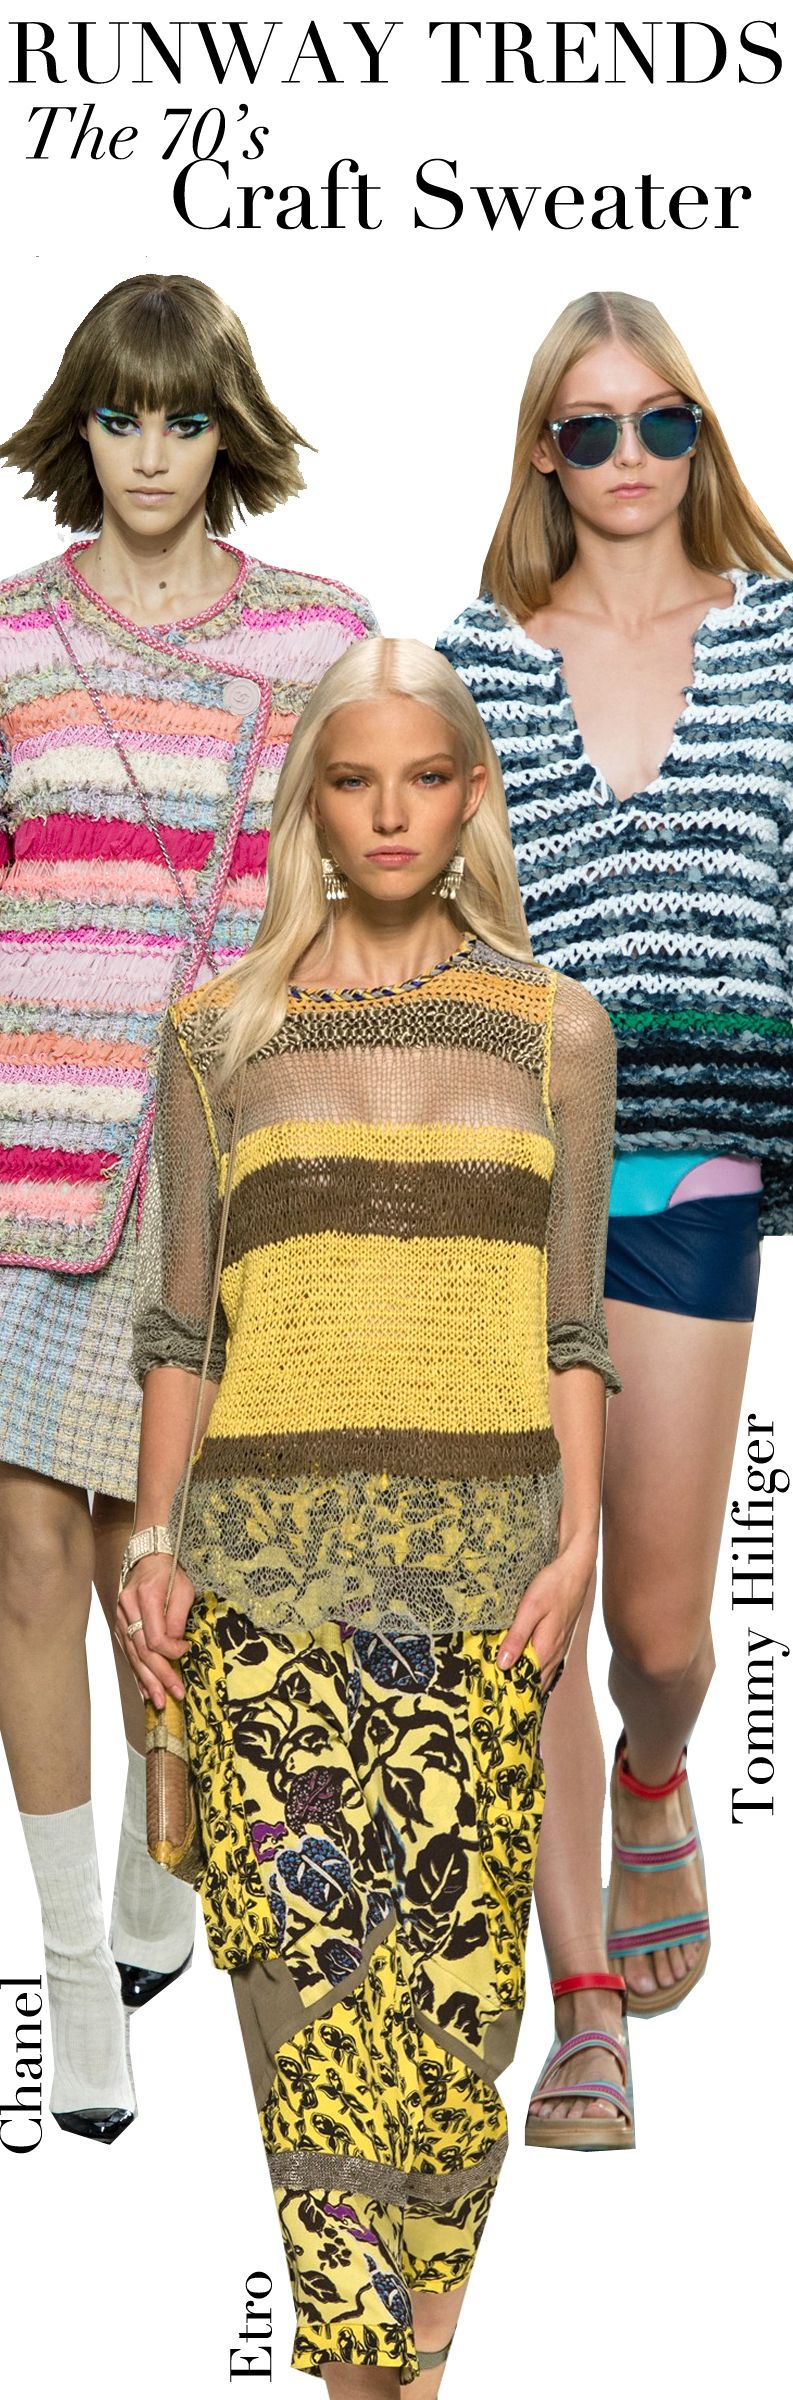 Trend Council:  Runway Trends - The 70's Craft Sweater